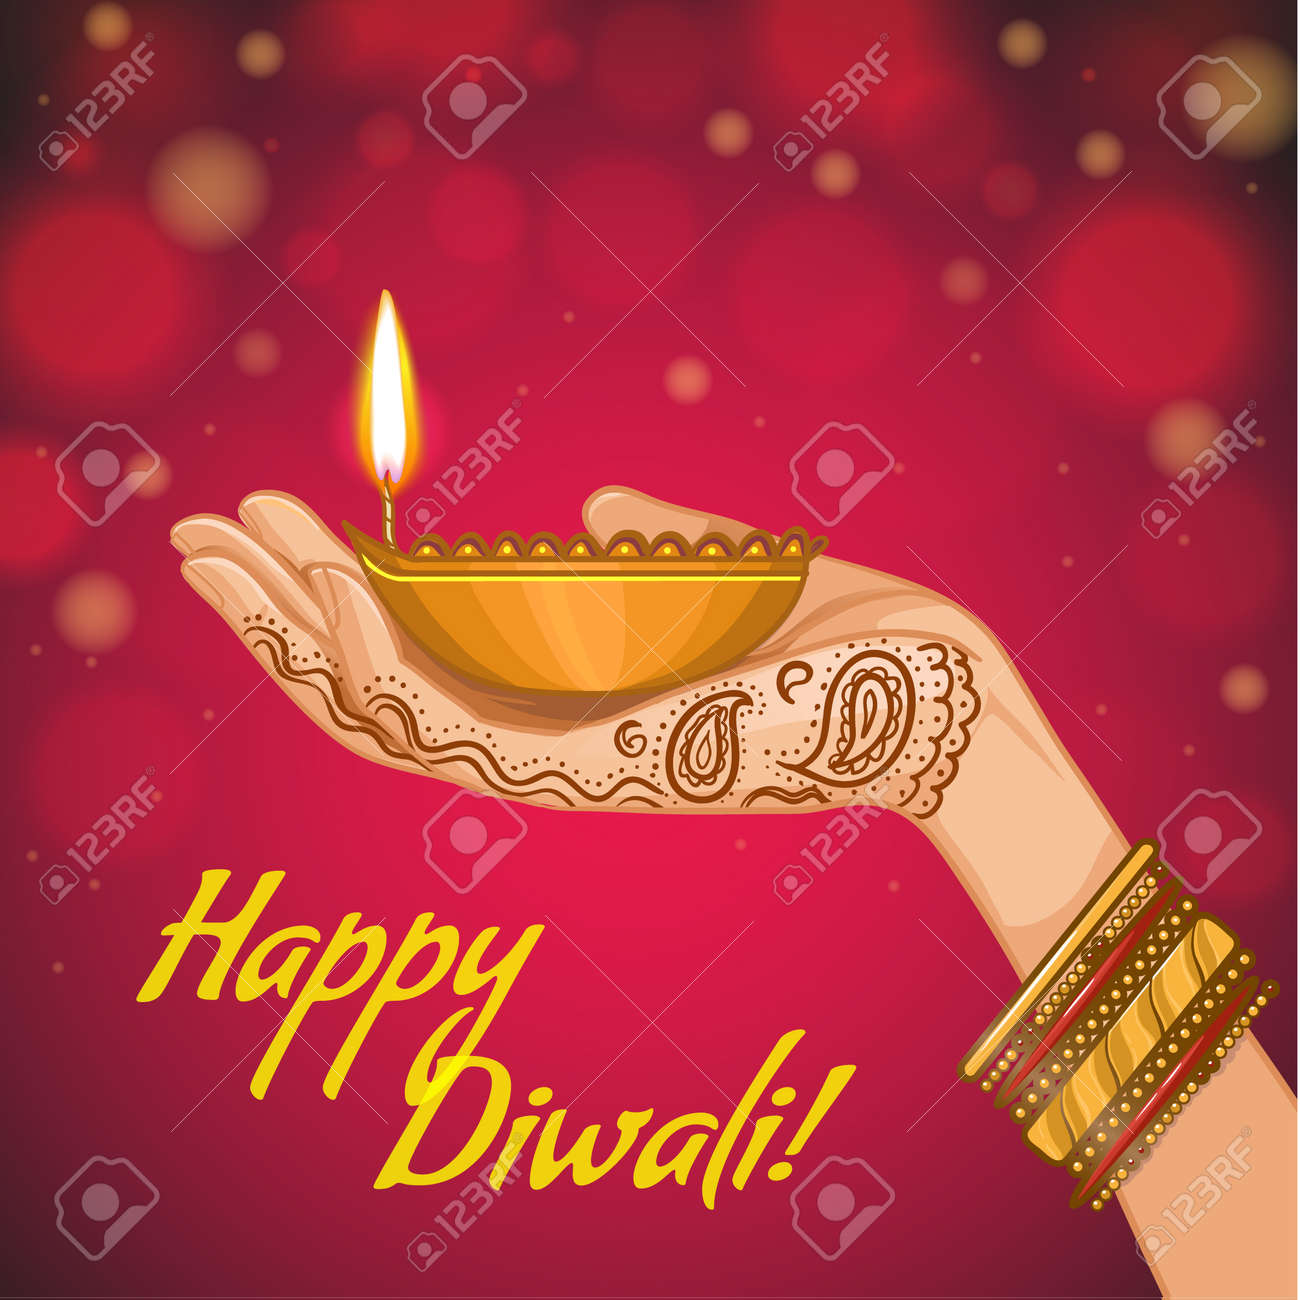 Greeting card for diwali with diya decoration in woman hand greeting card for diwali with diya decoration in woman hand vector image eps10 stock kristyandbryce Images